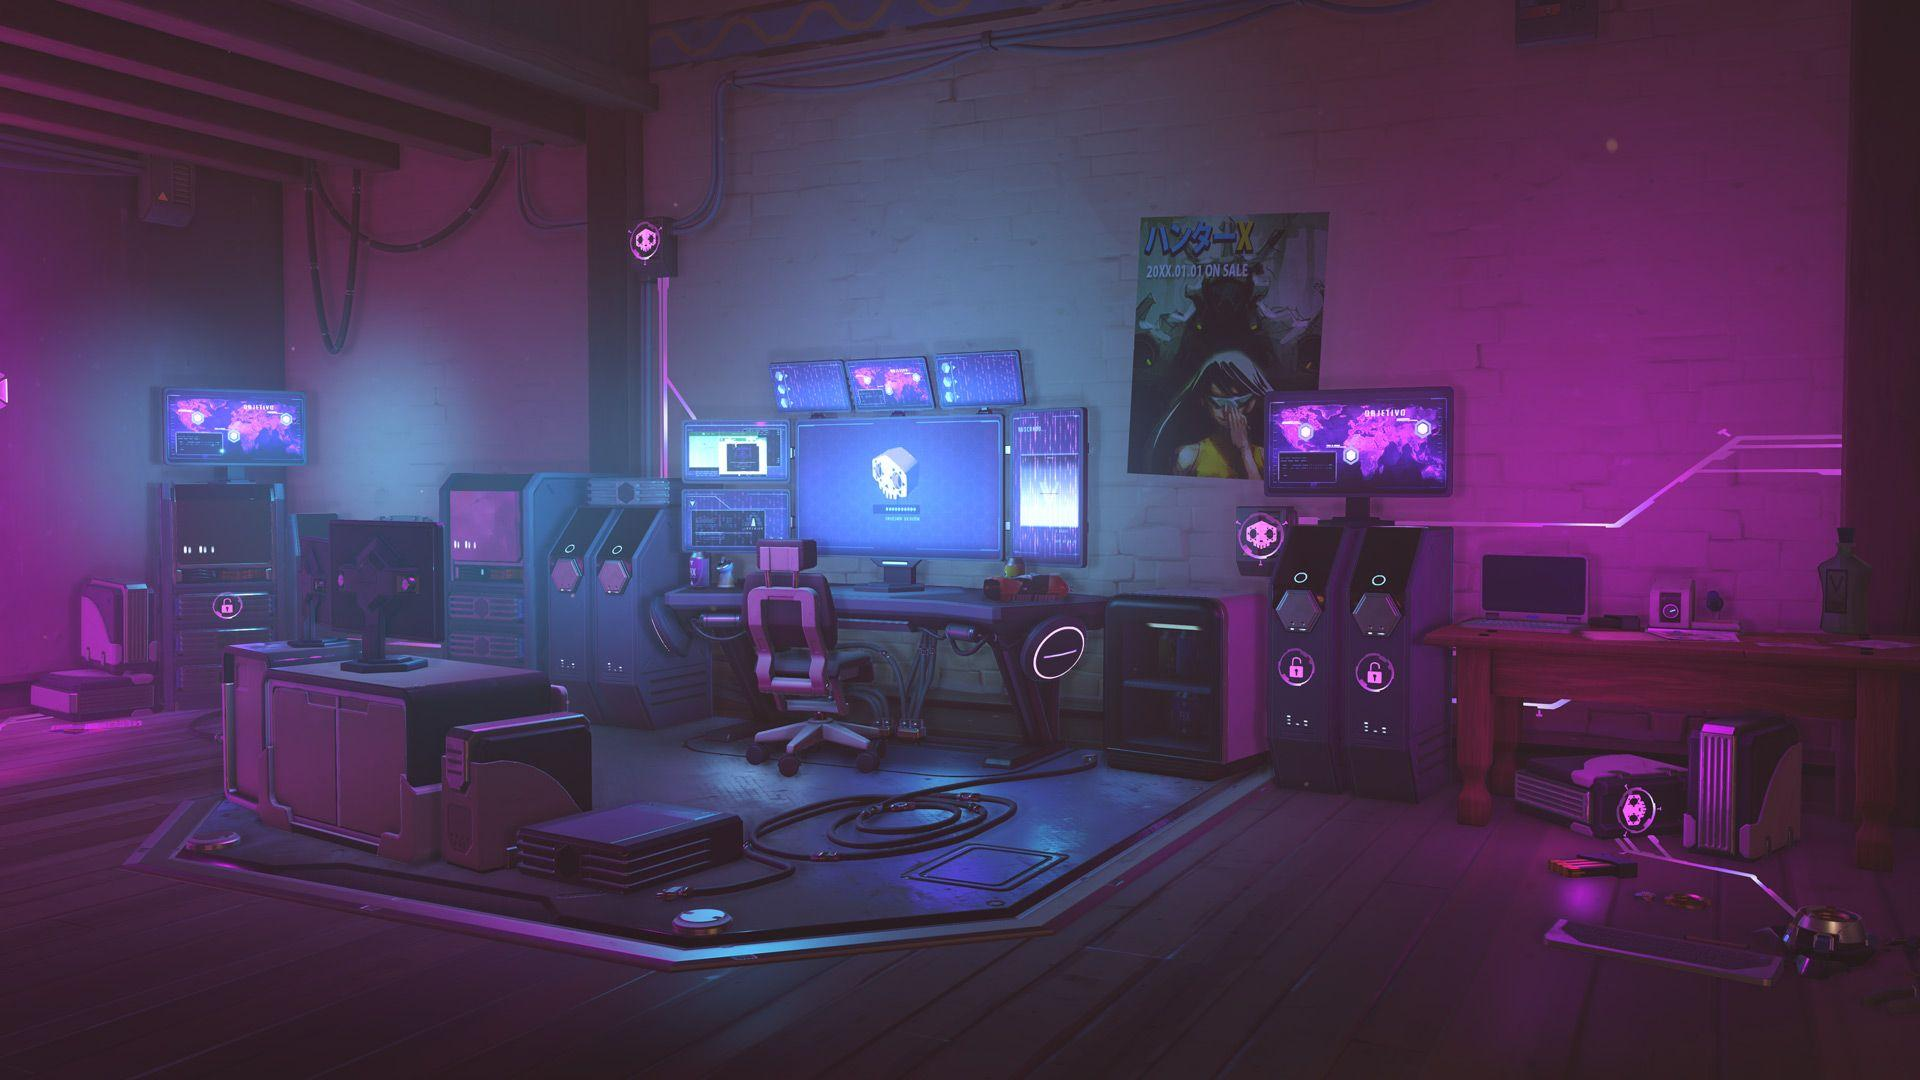 Purple Aesthetic Gaming Wallpapers Wallpaper Cave What you need to know is that these images that you add will neither increase nor decrease the speed of your computer. purple aesthetic gaming wallpapers